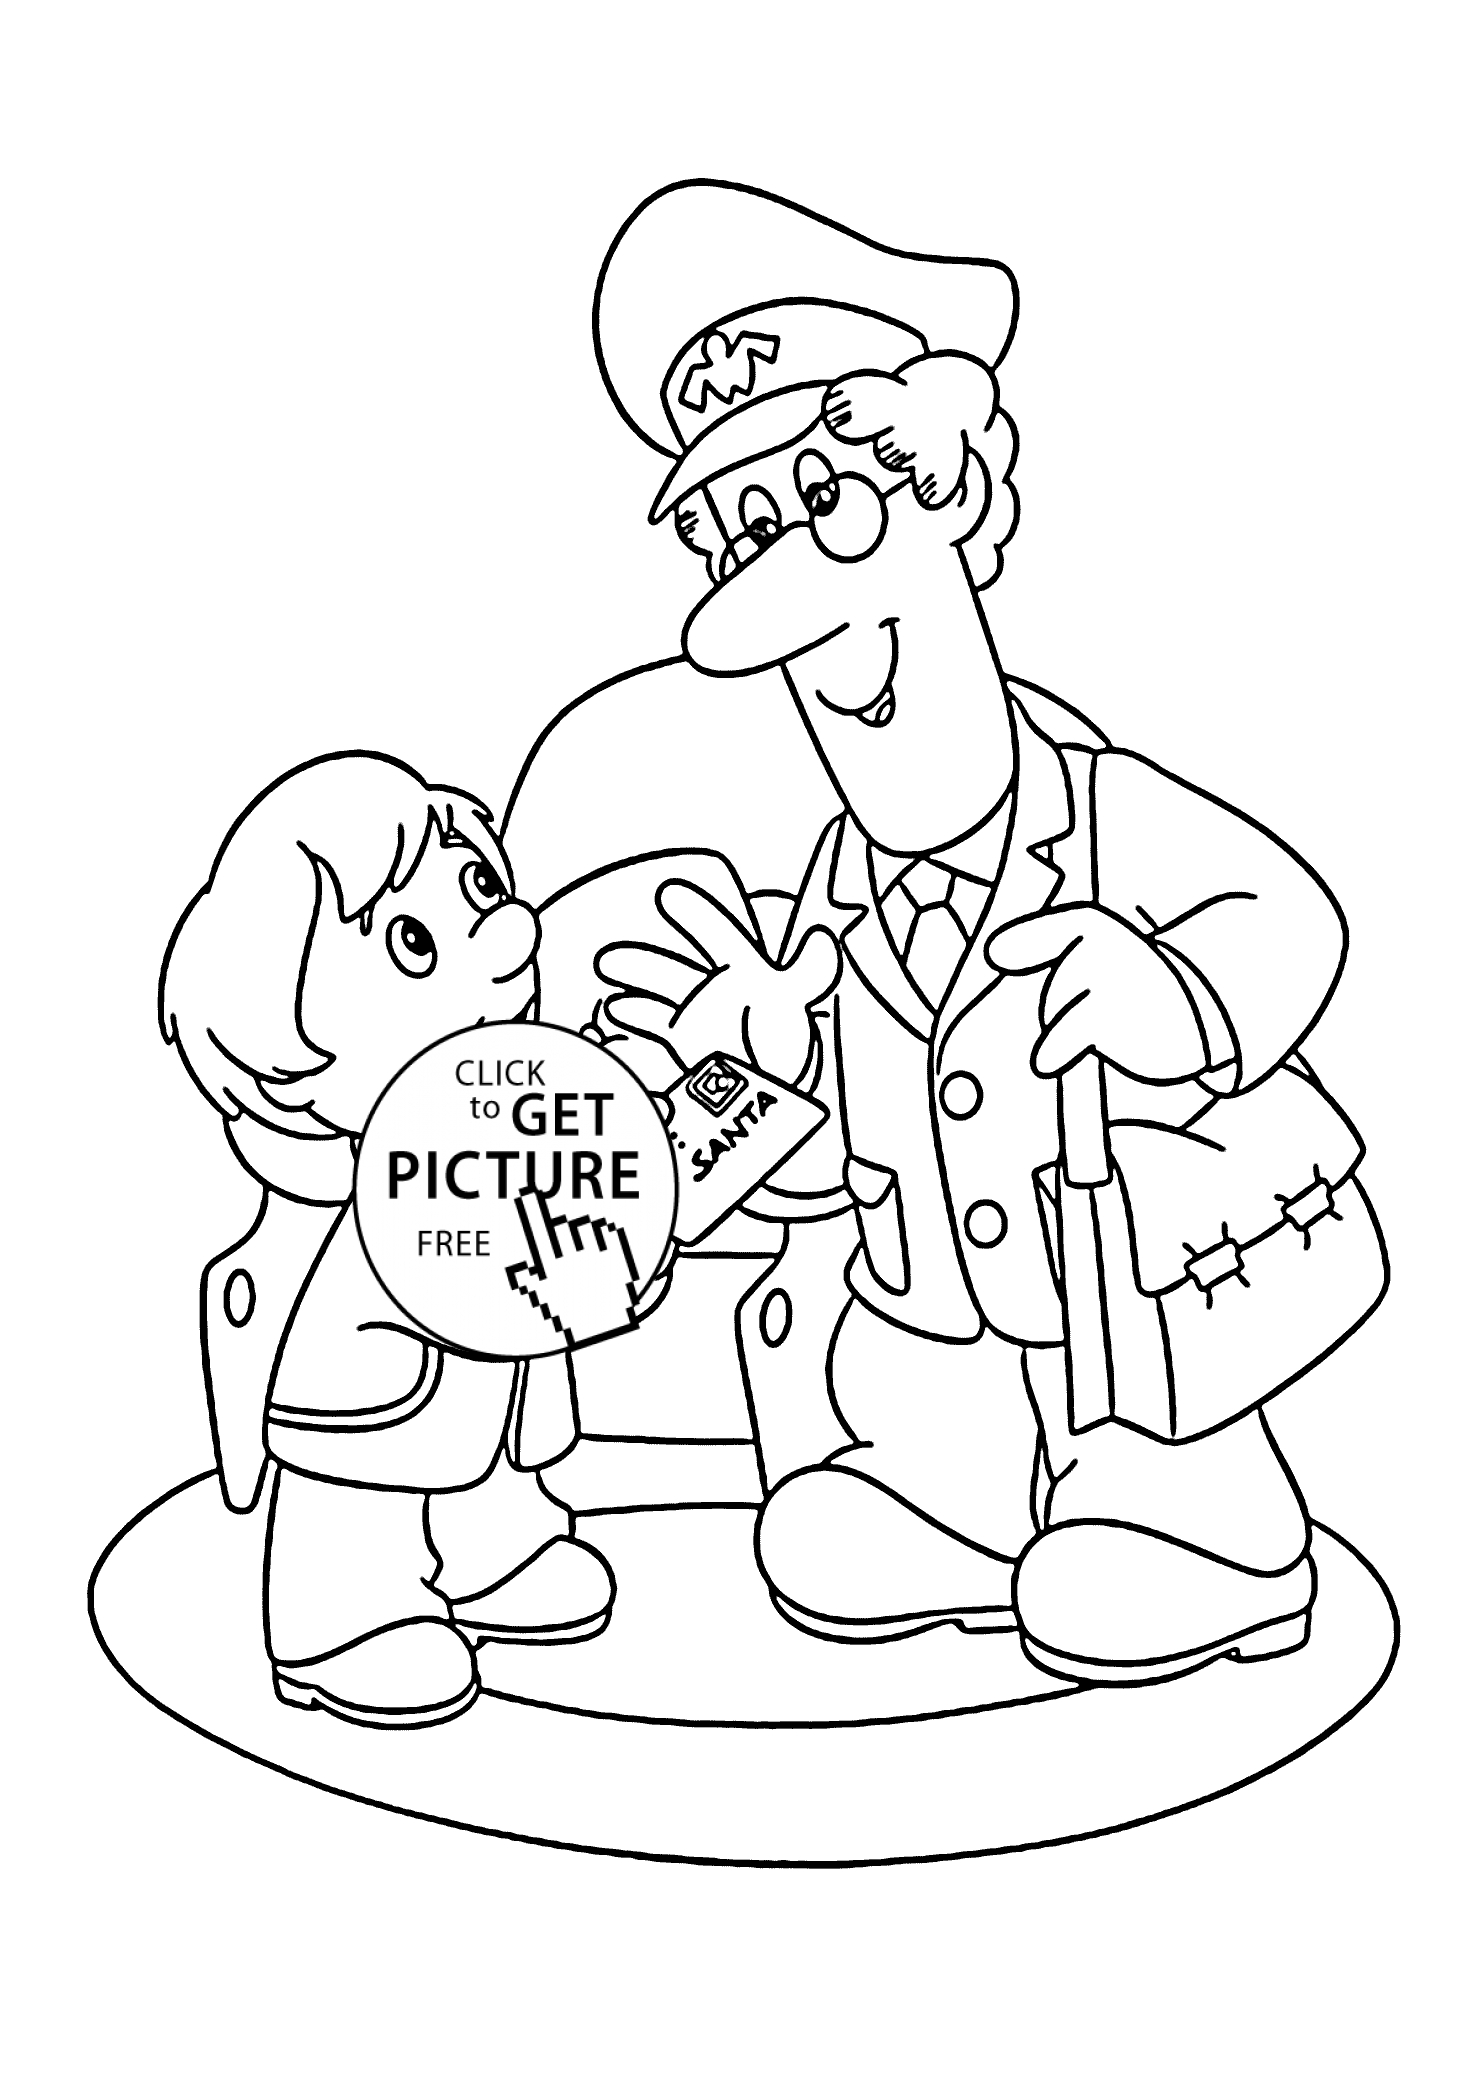 Santa Coloring Pages Printable Free - Postman Pat and Letter to Santa Coloring Pages for Kids